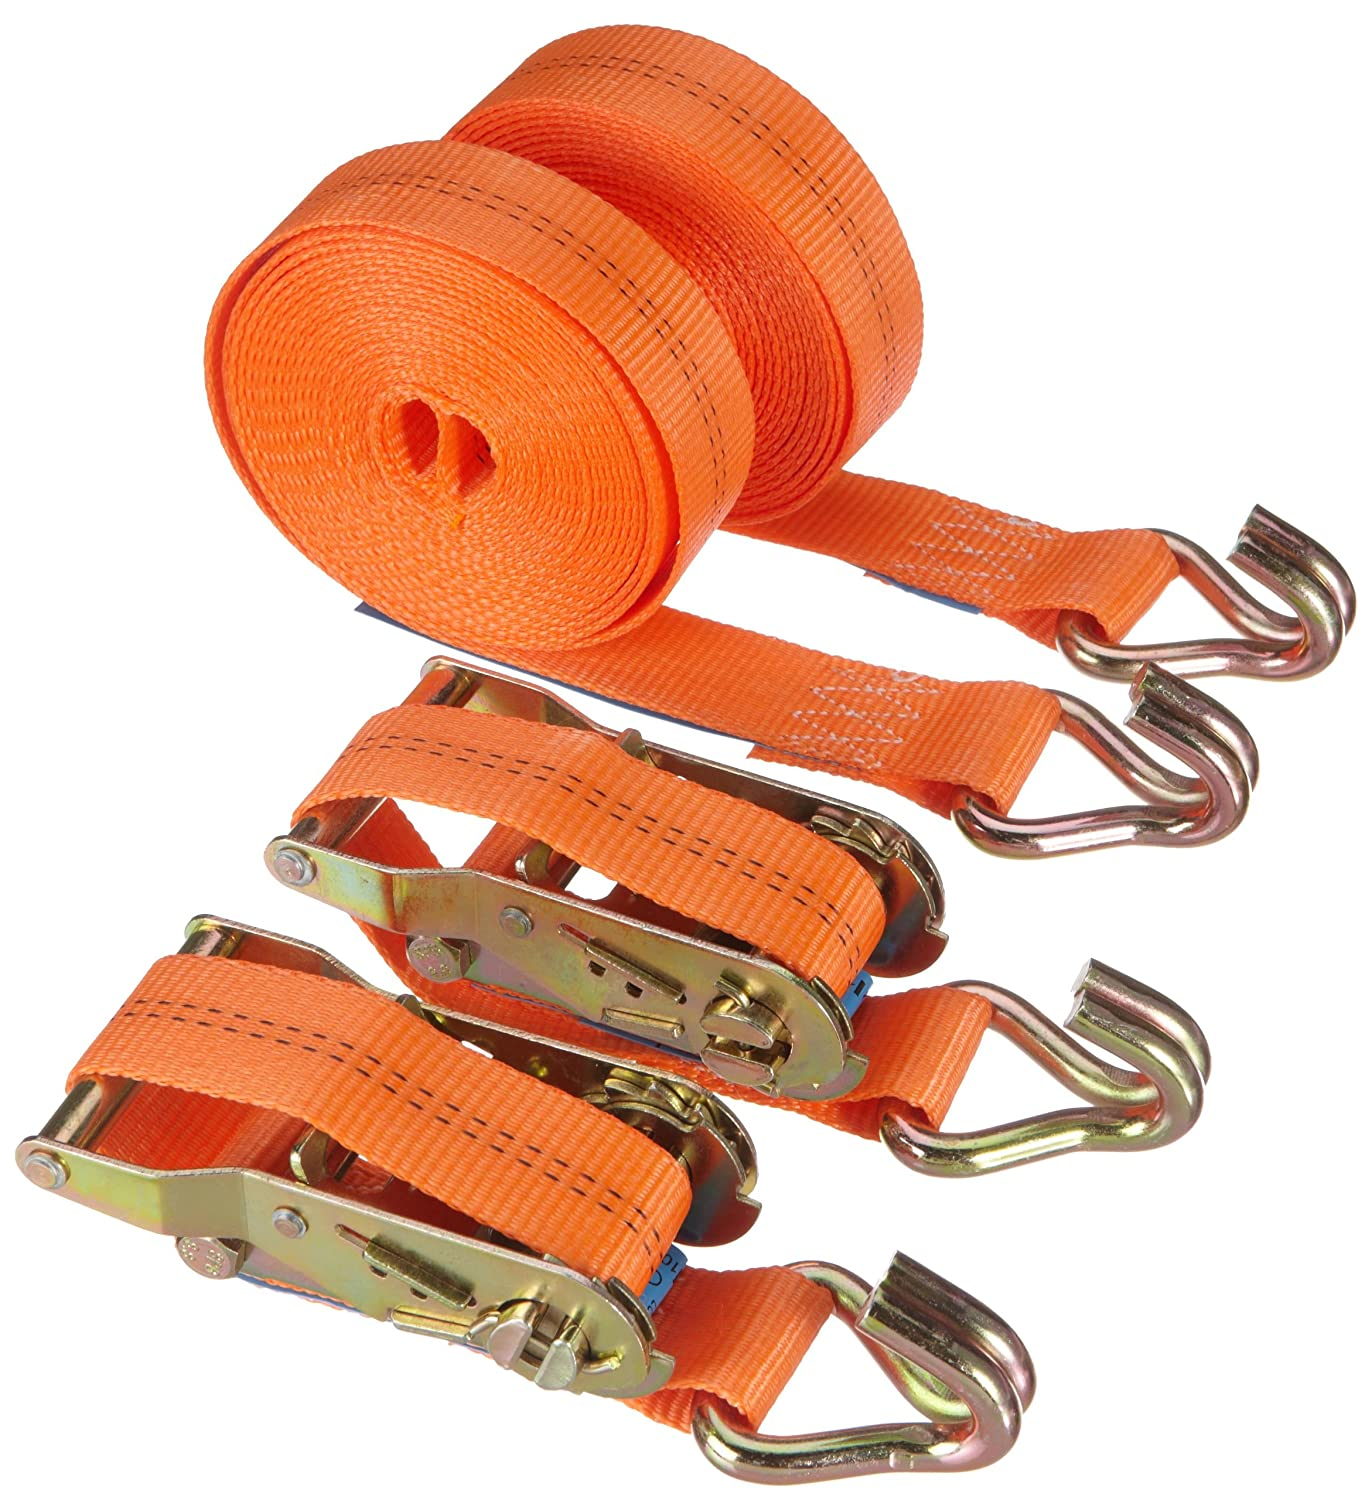 Braun 1000-2-600+3040/VE2 Sangle d'arrimage à cliquet et crochets 2000 daN, 6 m x 35 mm (Orange) 6 m x 35 mm (Orange) Braun GmbH